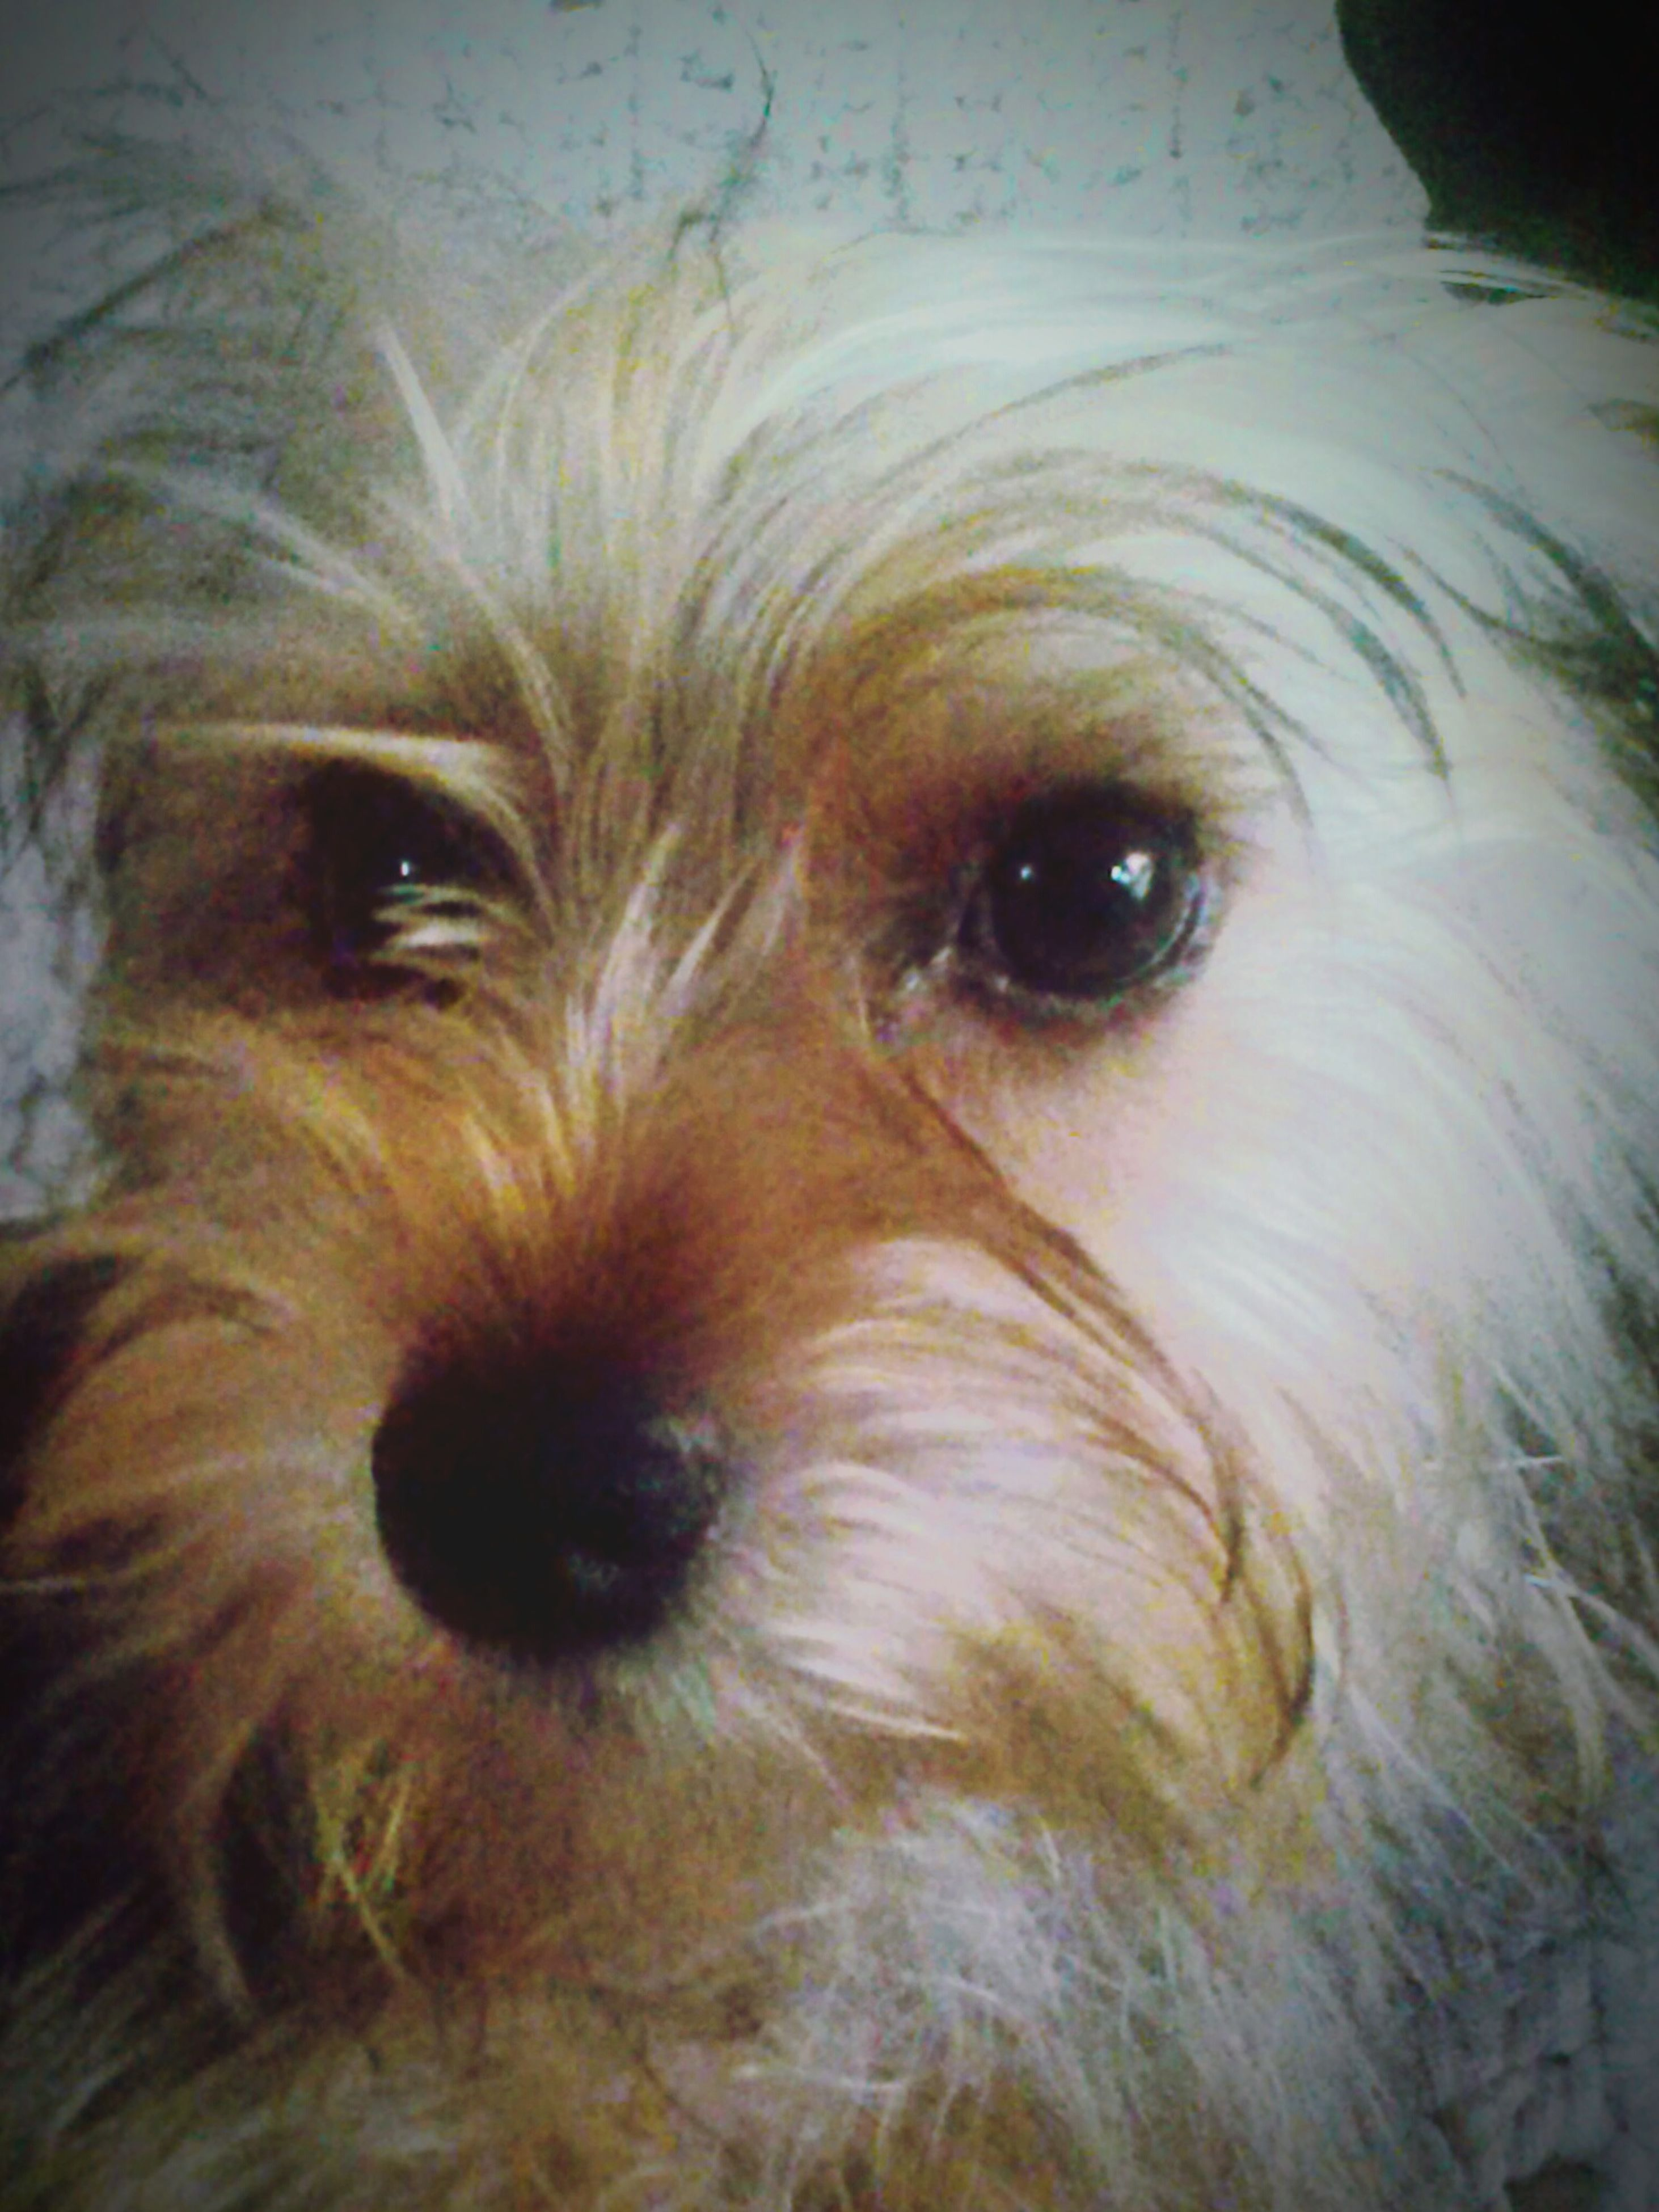 dog, animal themes, one animal, domestic animals, pets, mammal, animal head, indoors, close-up, animal hair, animal body part, portrait, looking at camera, loyalty, no people, pampered pets, zoology, puppy, vertebrate, snout